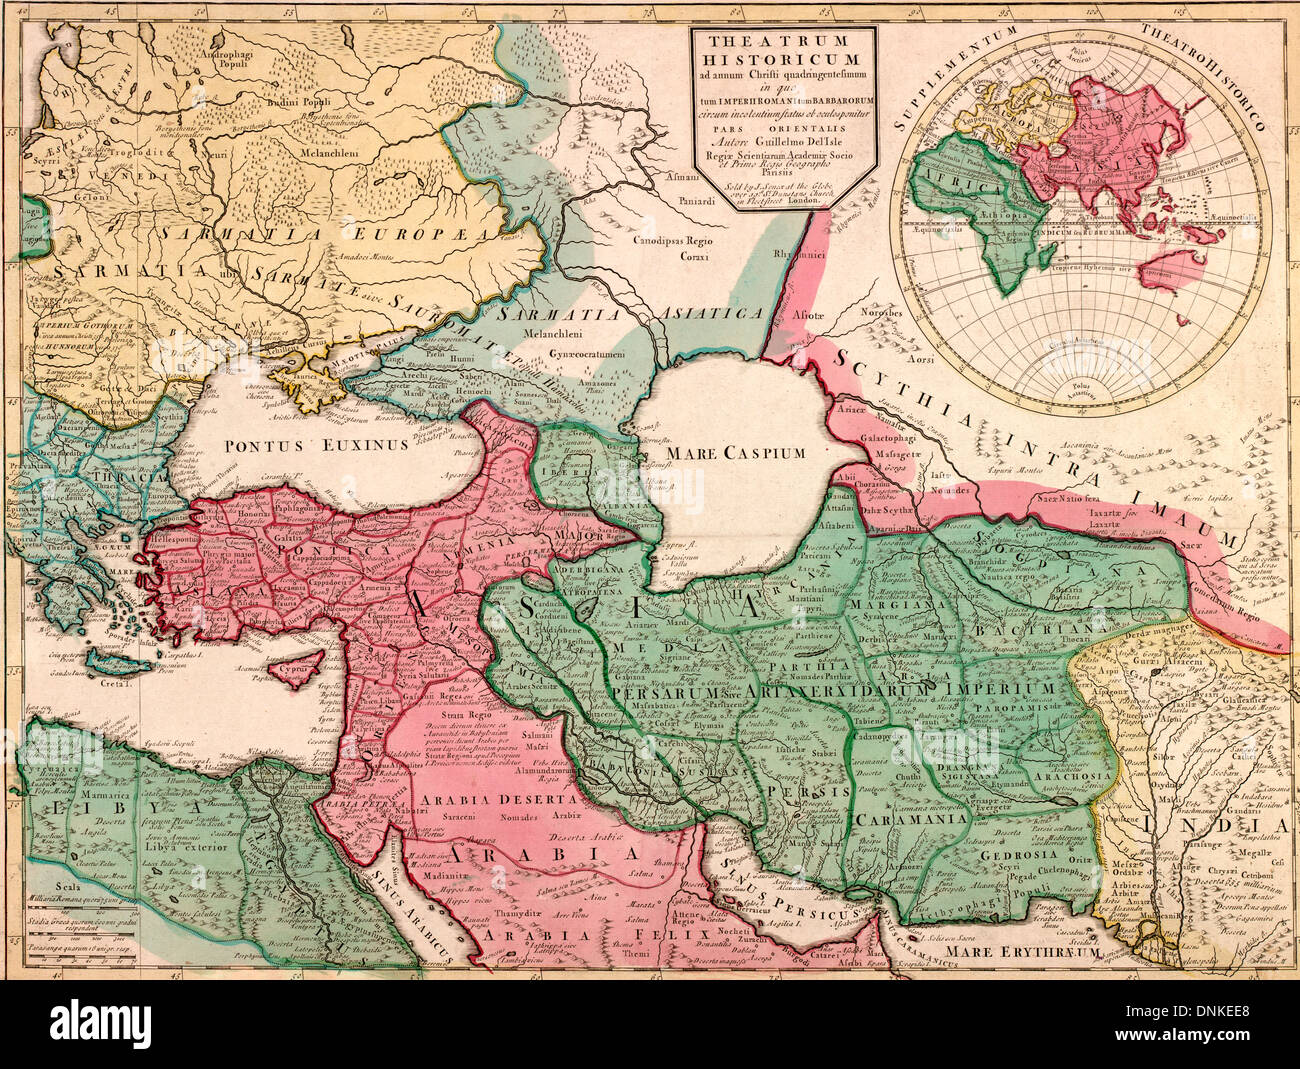 Map Of Asia 1900.European Asia Map Circa 1900 Theatre Of Four Hundred Years Of Stock